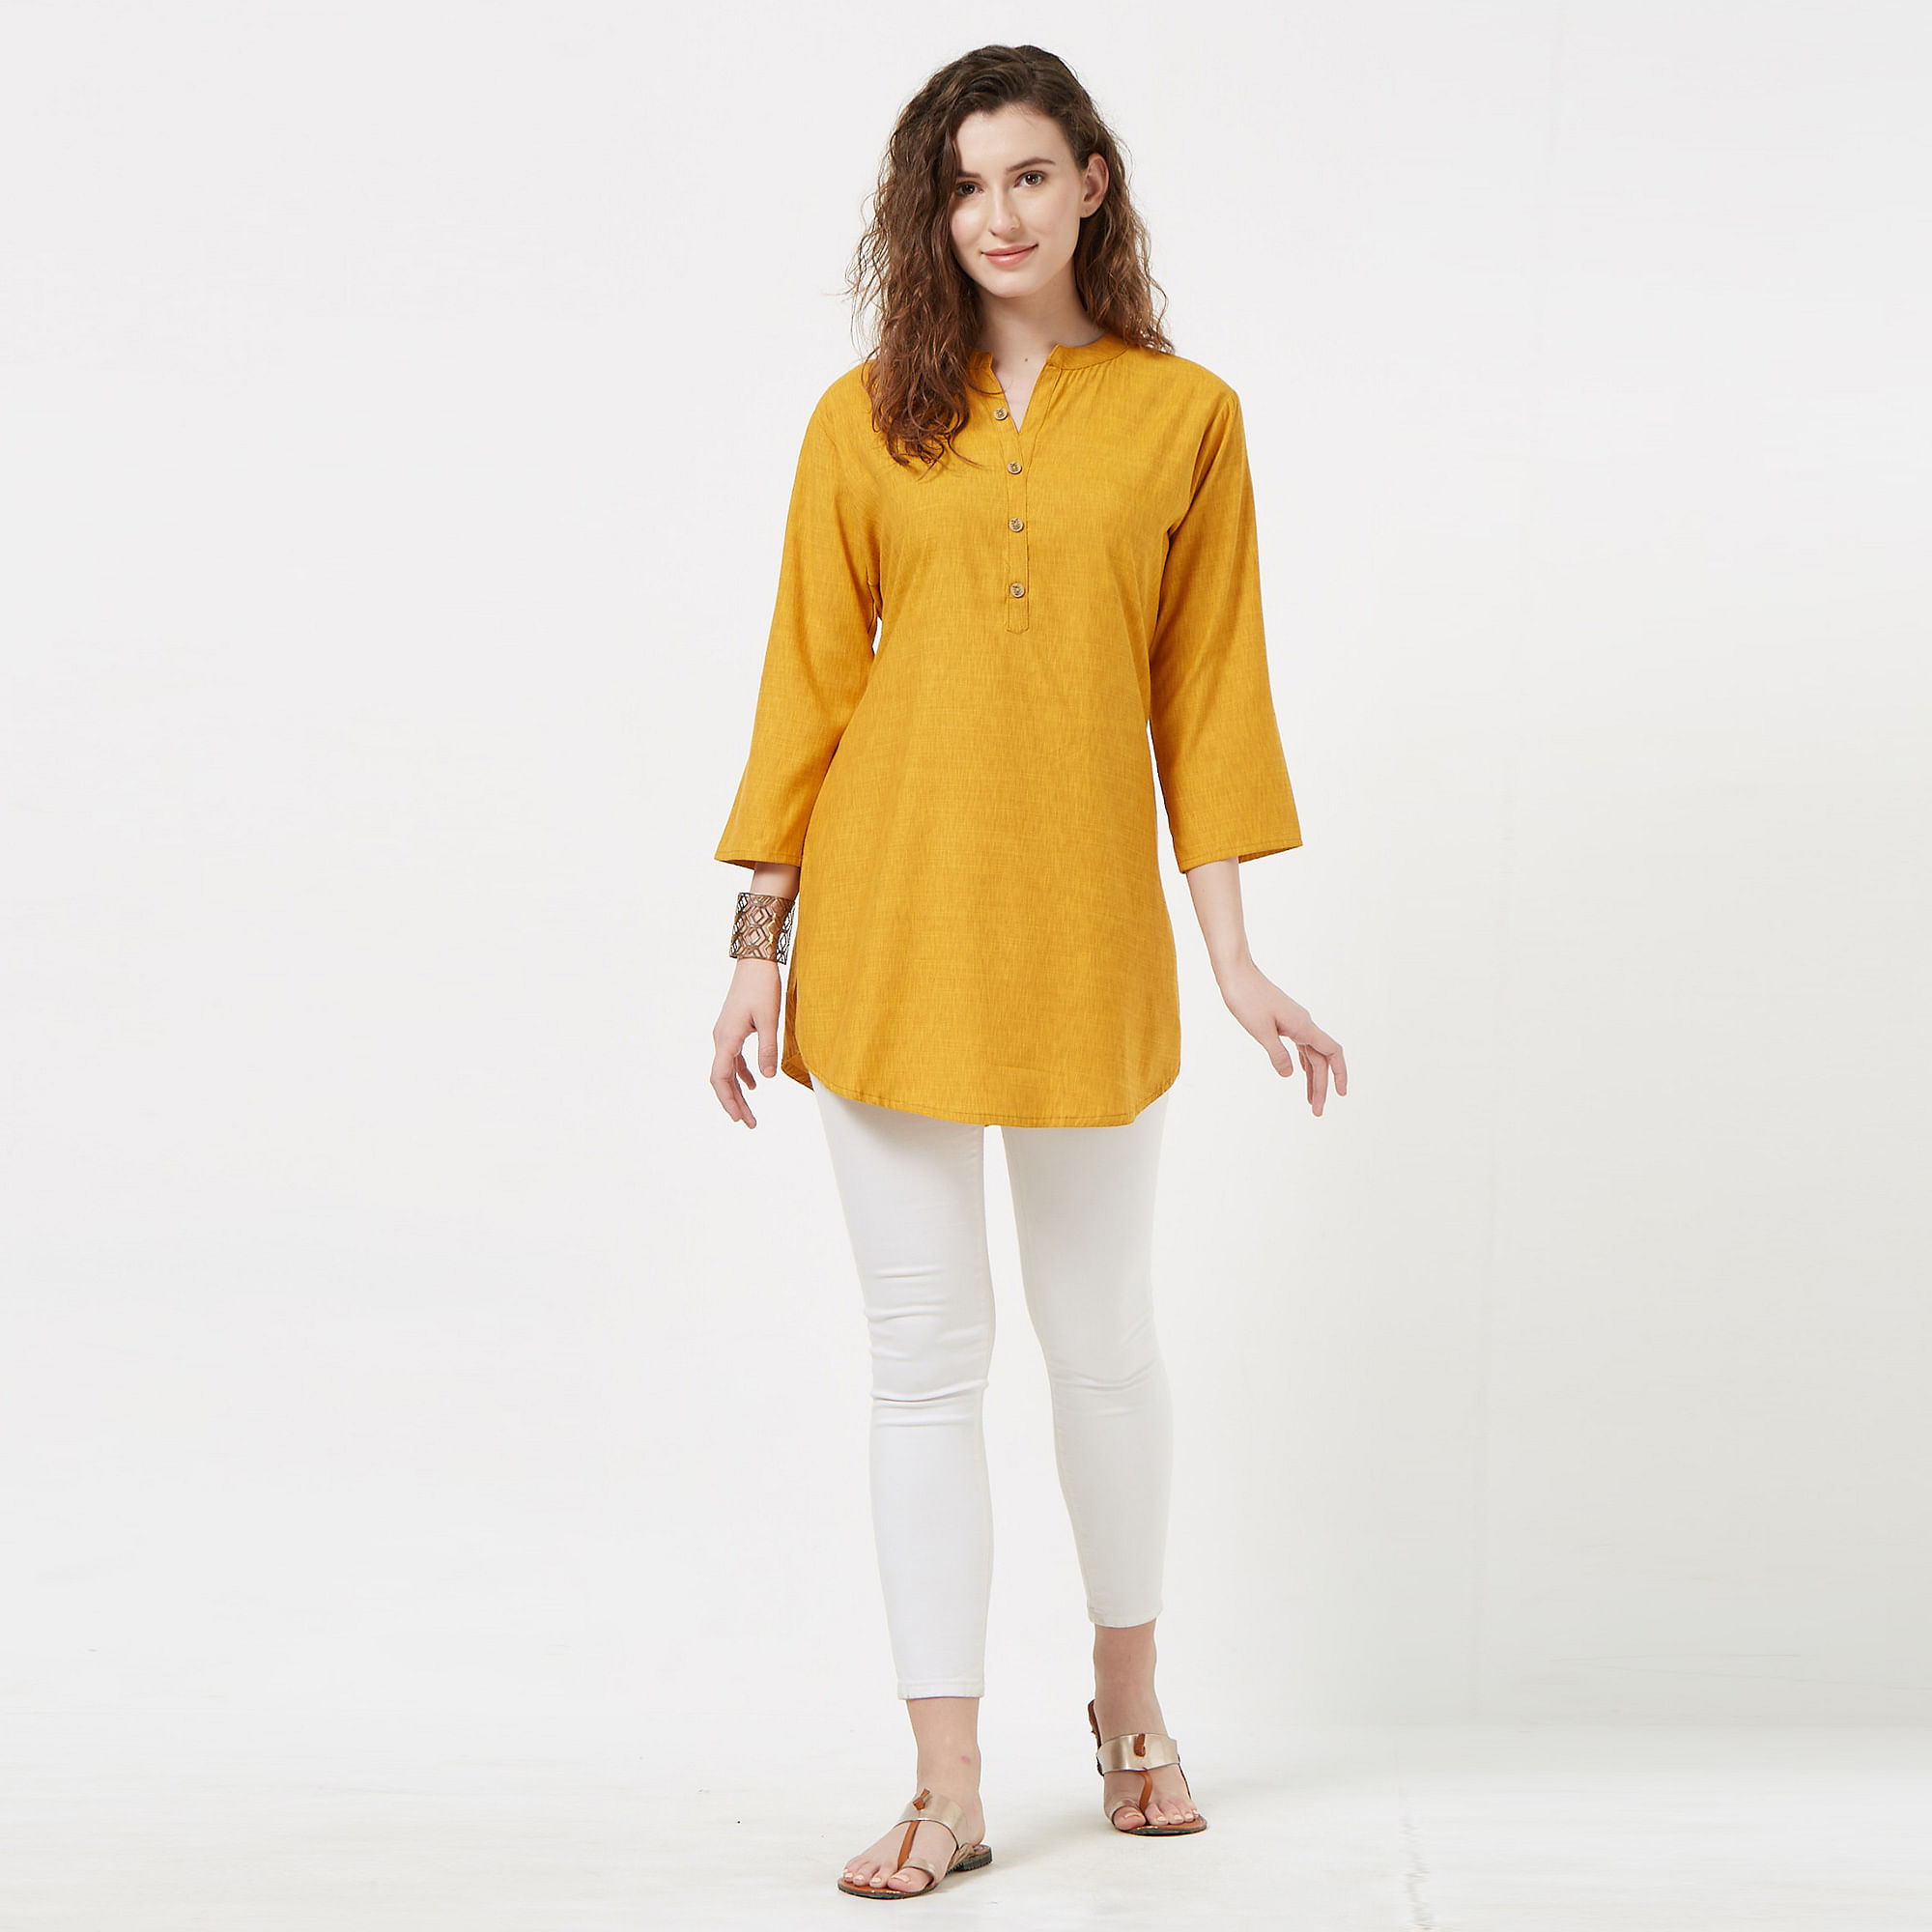 Exotic Yellow Colored Casual Wear Cotton Top